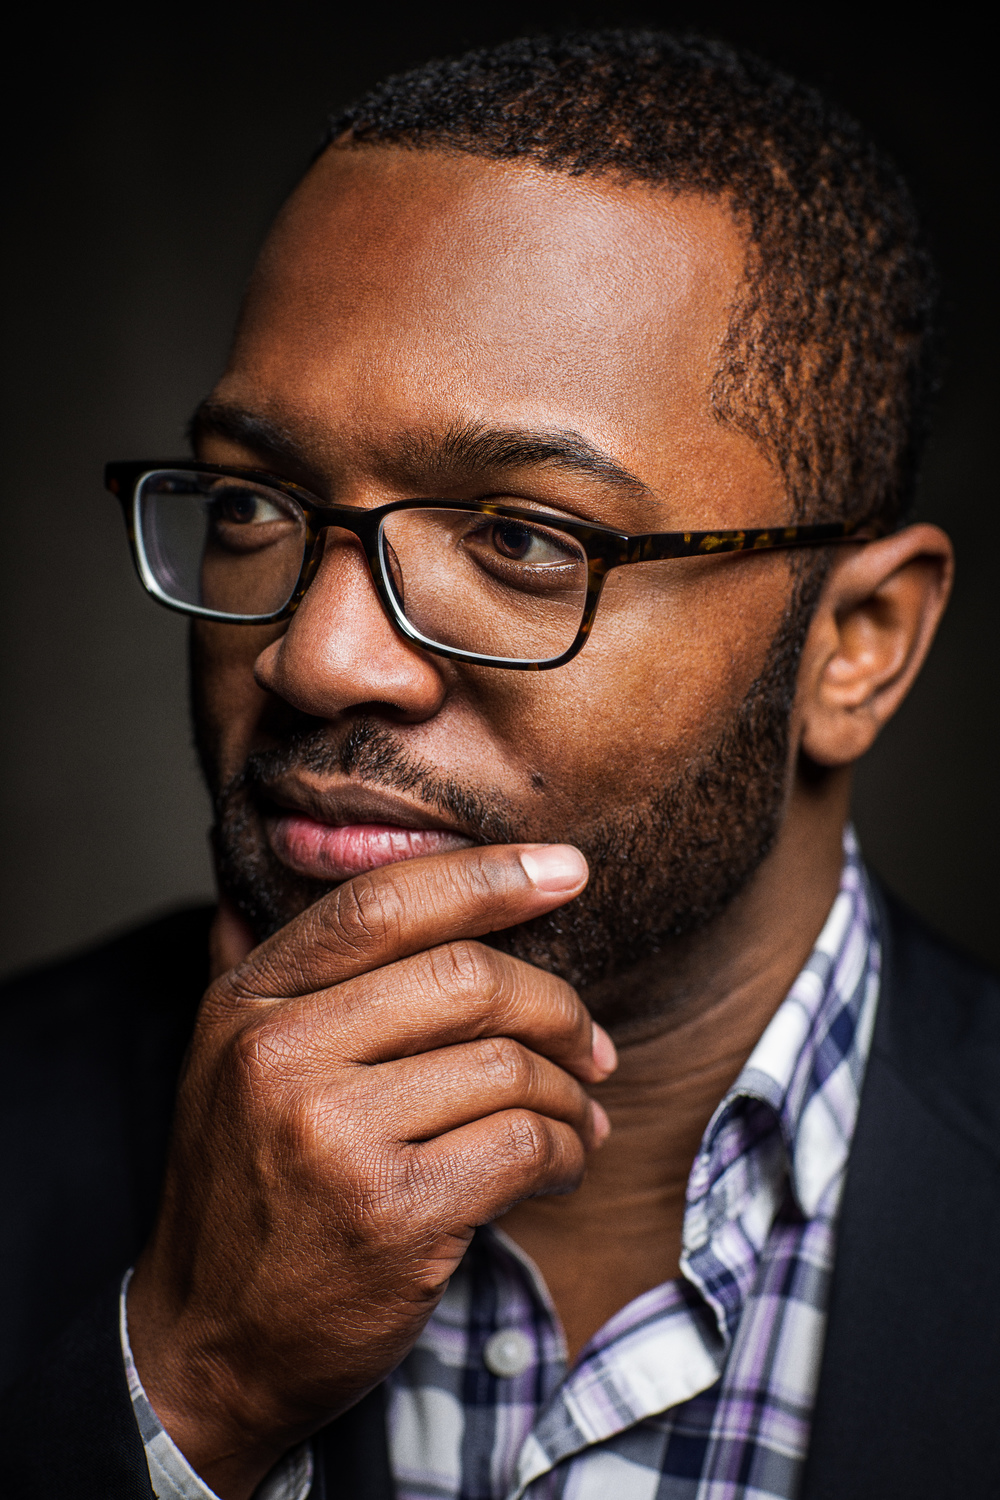 Baratunde Lookin All Thoughtful (color) high resolution